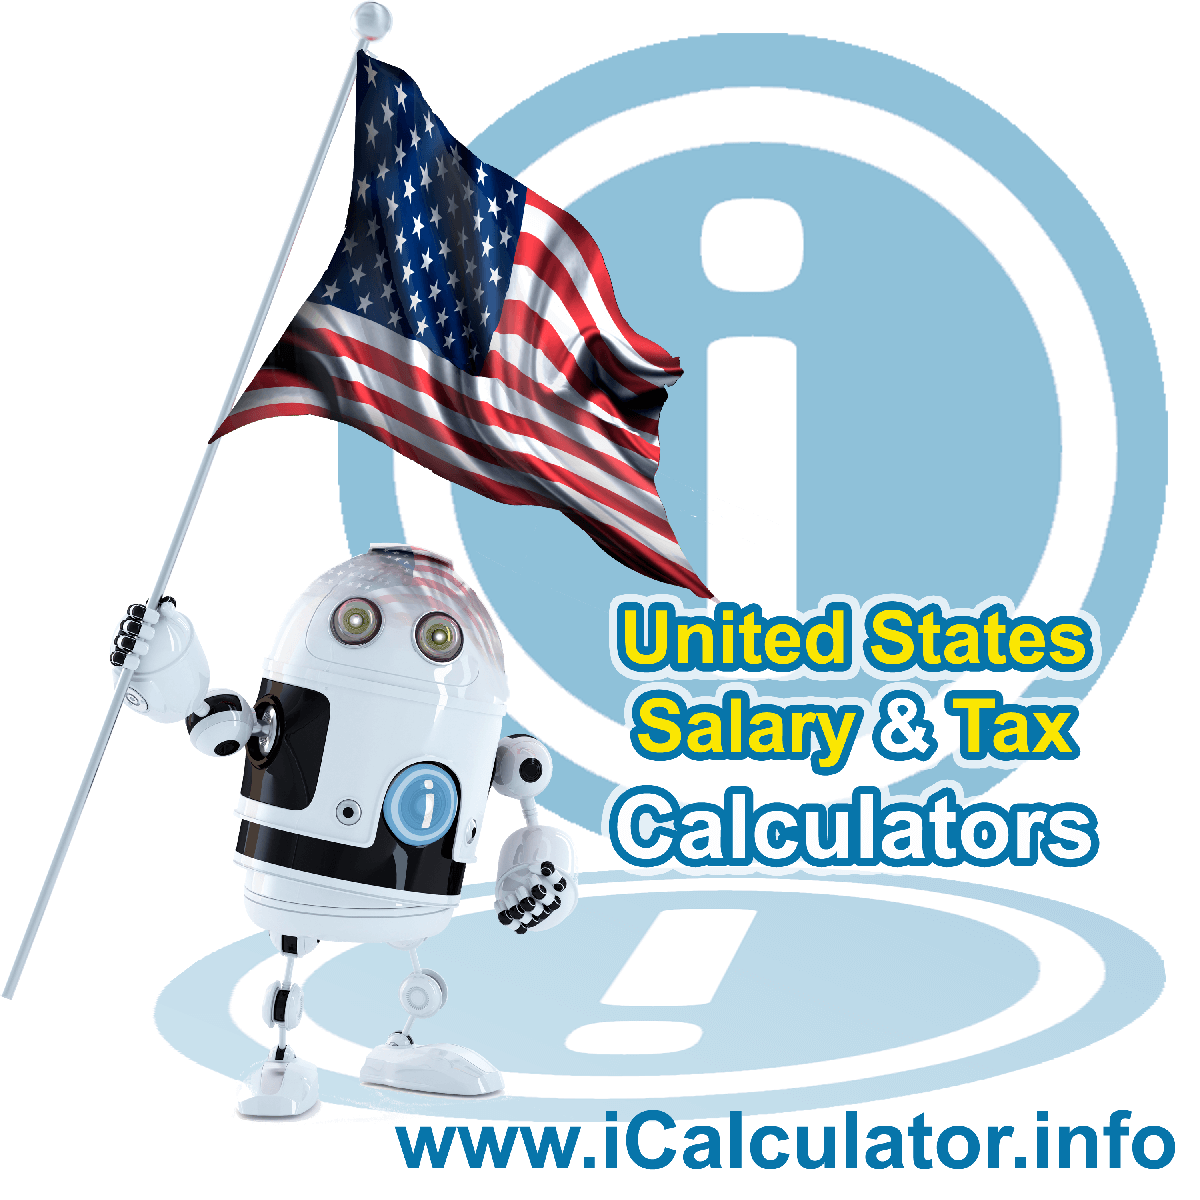 US Salary Calculator 2019 | iCalculator | The United States Salary Calculator allows you to quickly calculate your salary after tax. The US Salary Calculator includes Federal and State income tax, medicare, social security, capital gains and other income tax and salary deductions complete with supporting income tax tables